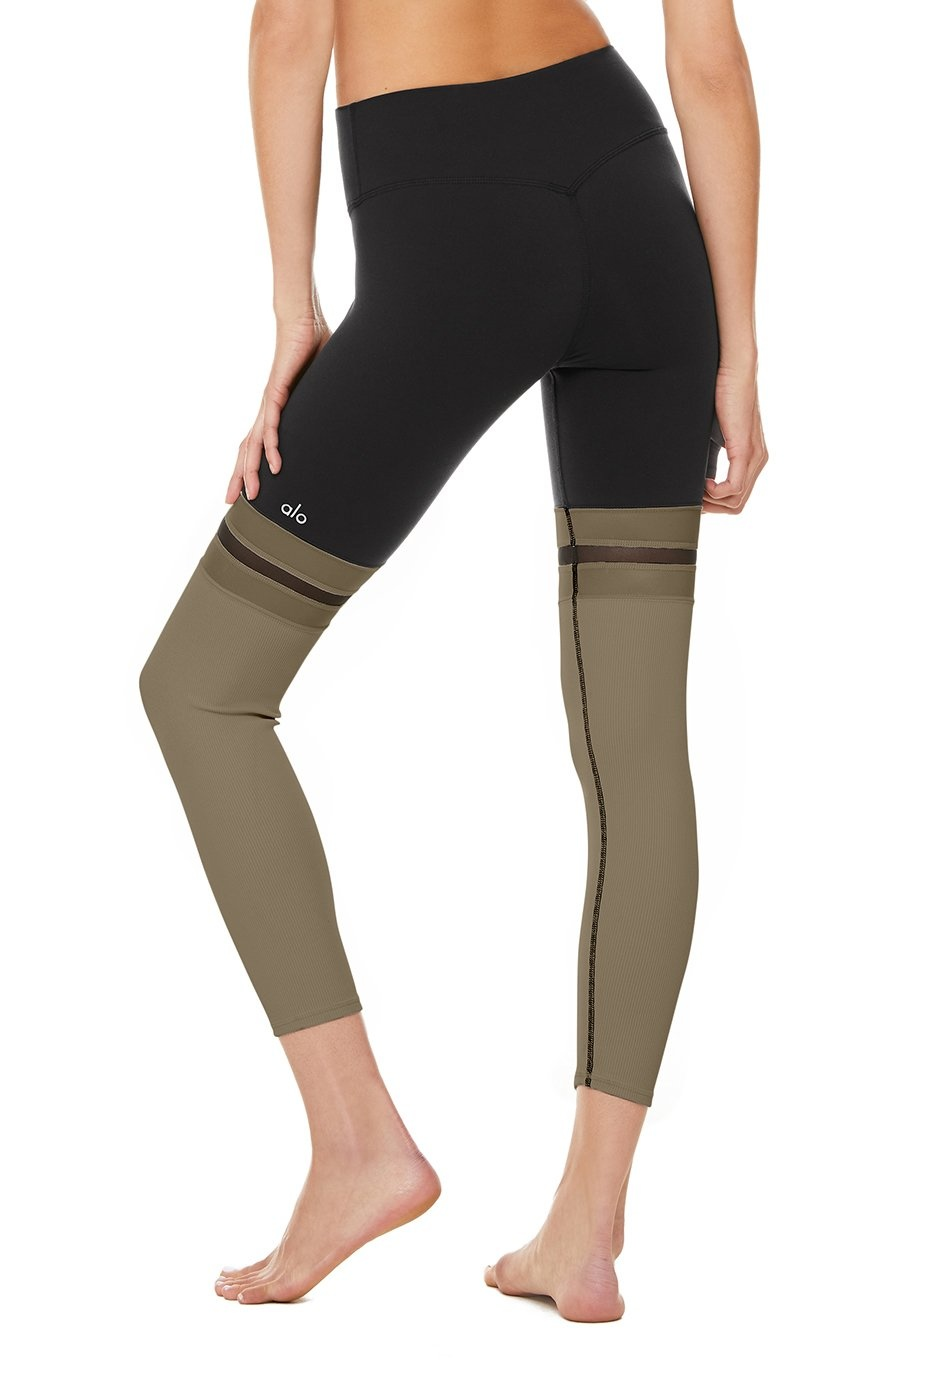 7/8 Player Legging Black/Olive Branch